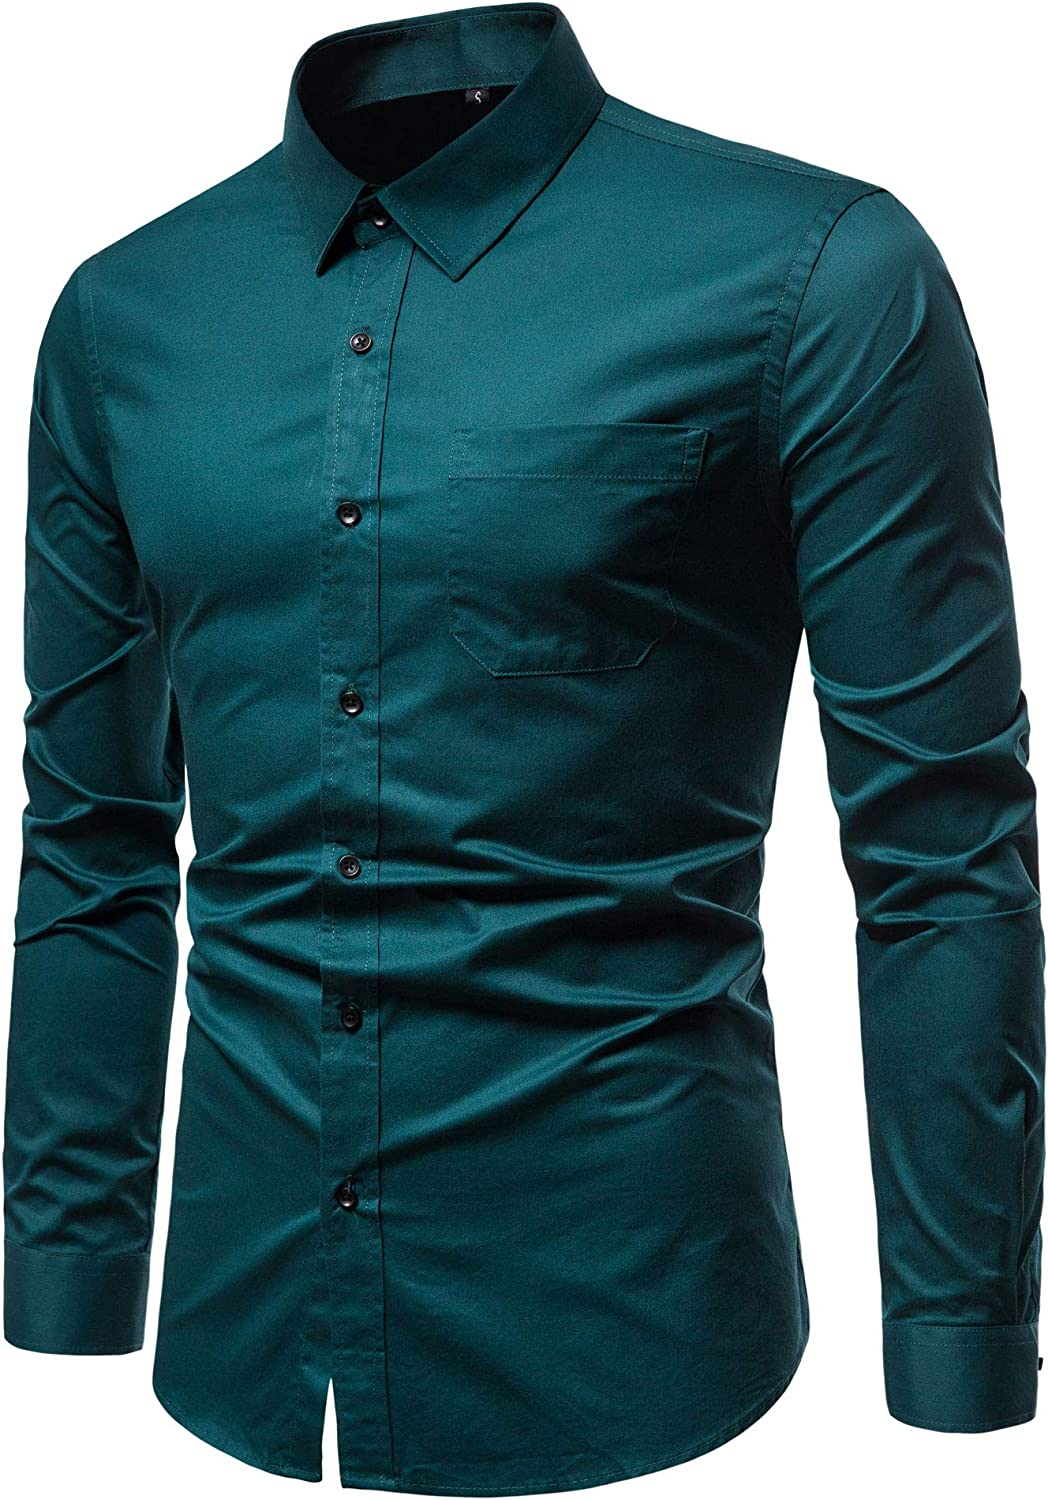 VANCOOG Men/'s Long Sleeve Casual Button Down Dress Shirts with Chest Pocket